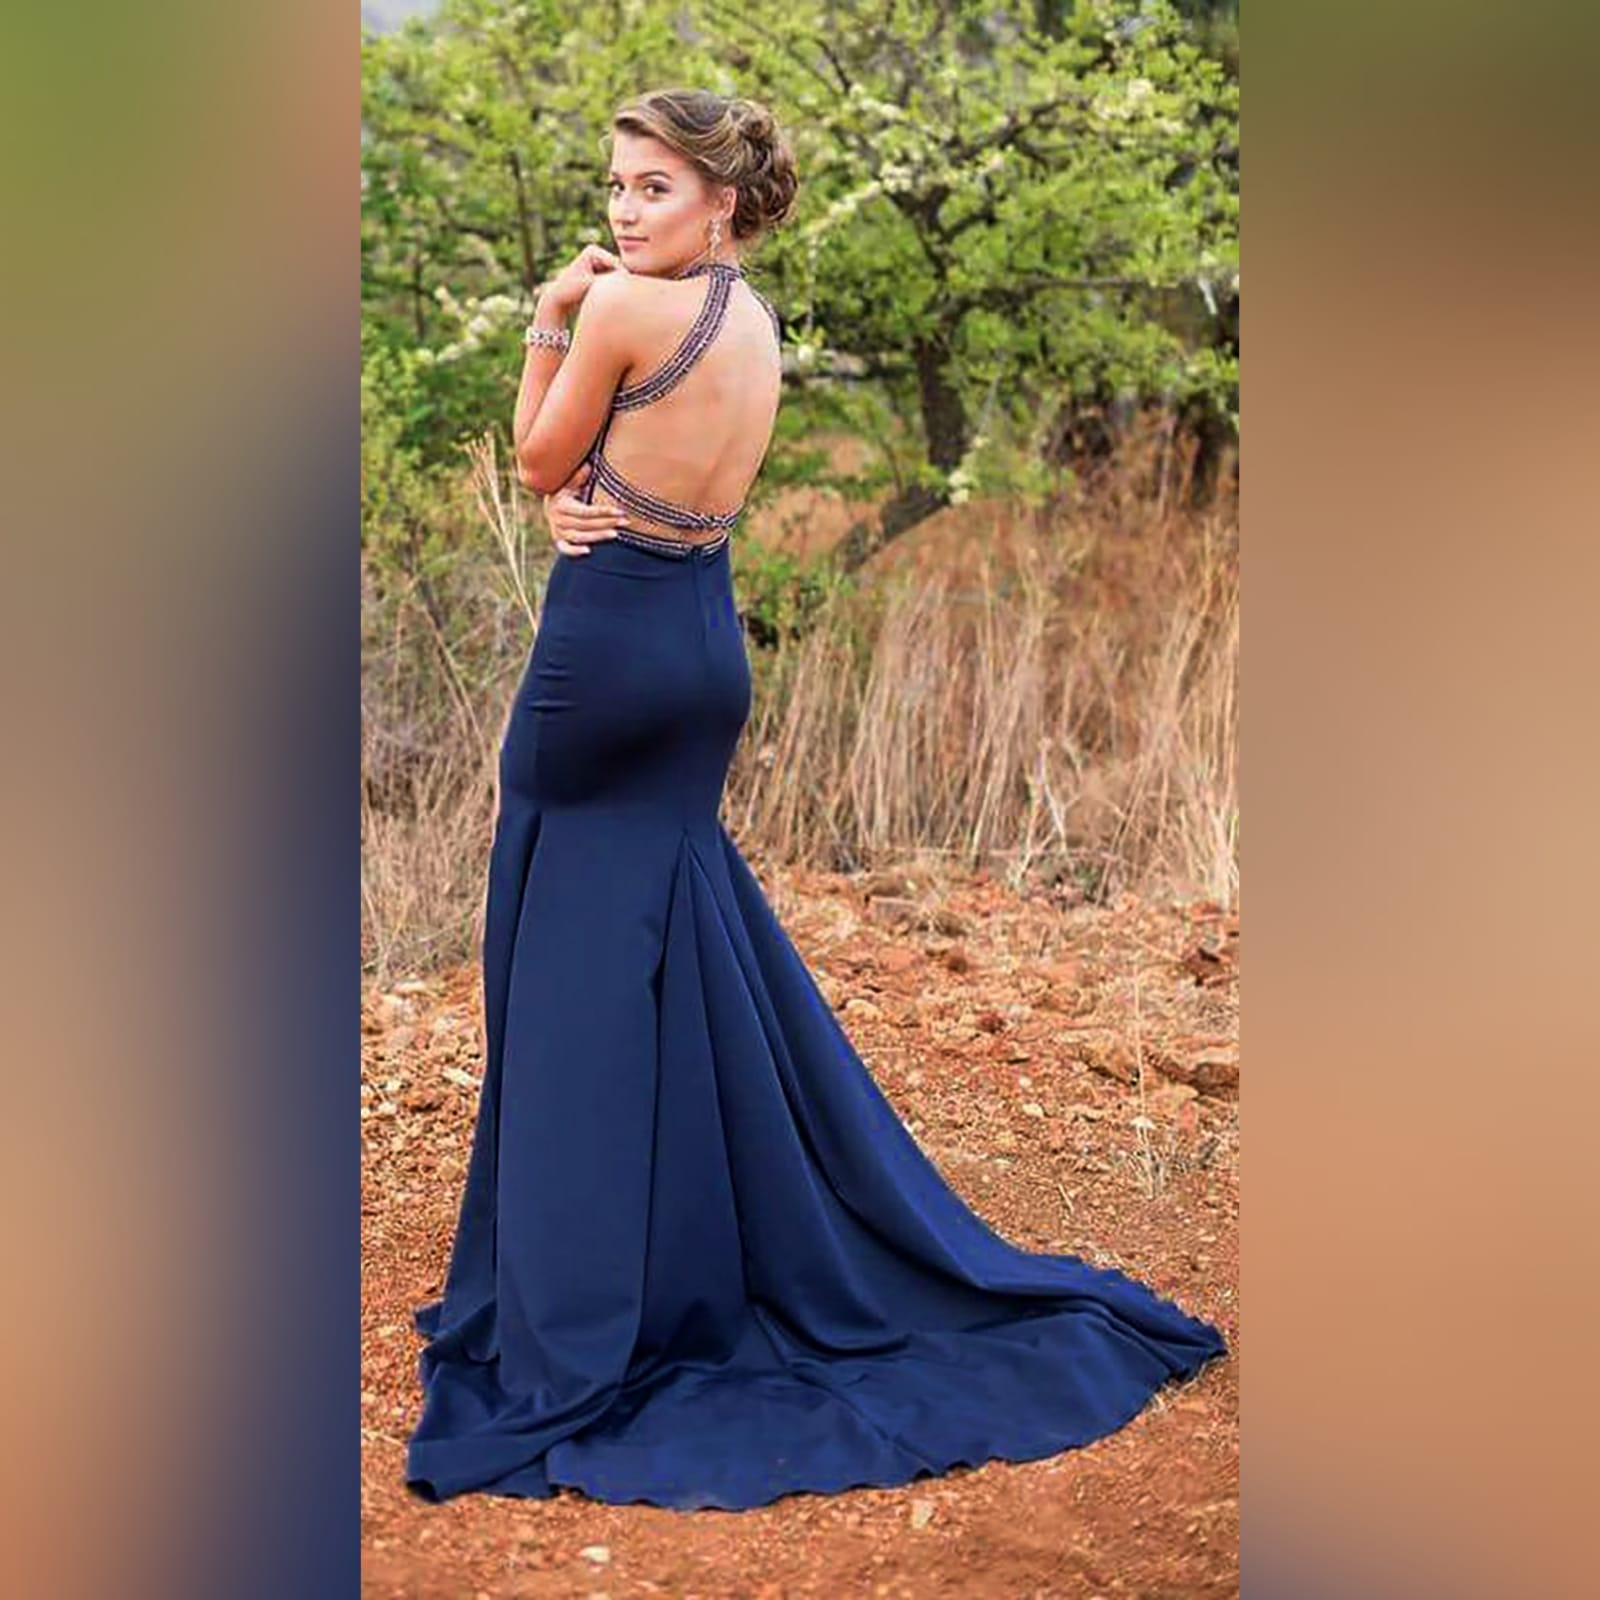 Navy blue silver beaded prom dress 6 navy blue silver beaded prom dress with an illusion neckline and a choker effect. Backless design detailed with beaded straps. Fitted bottom with a slit and a train.